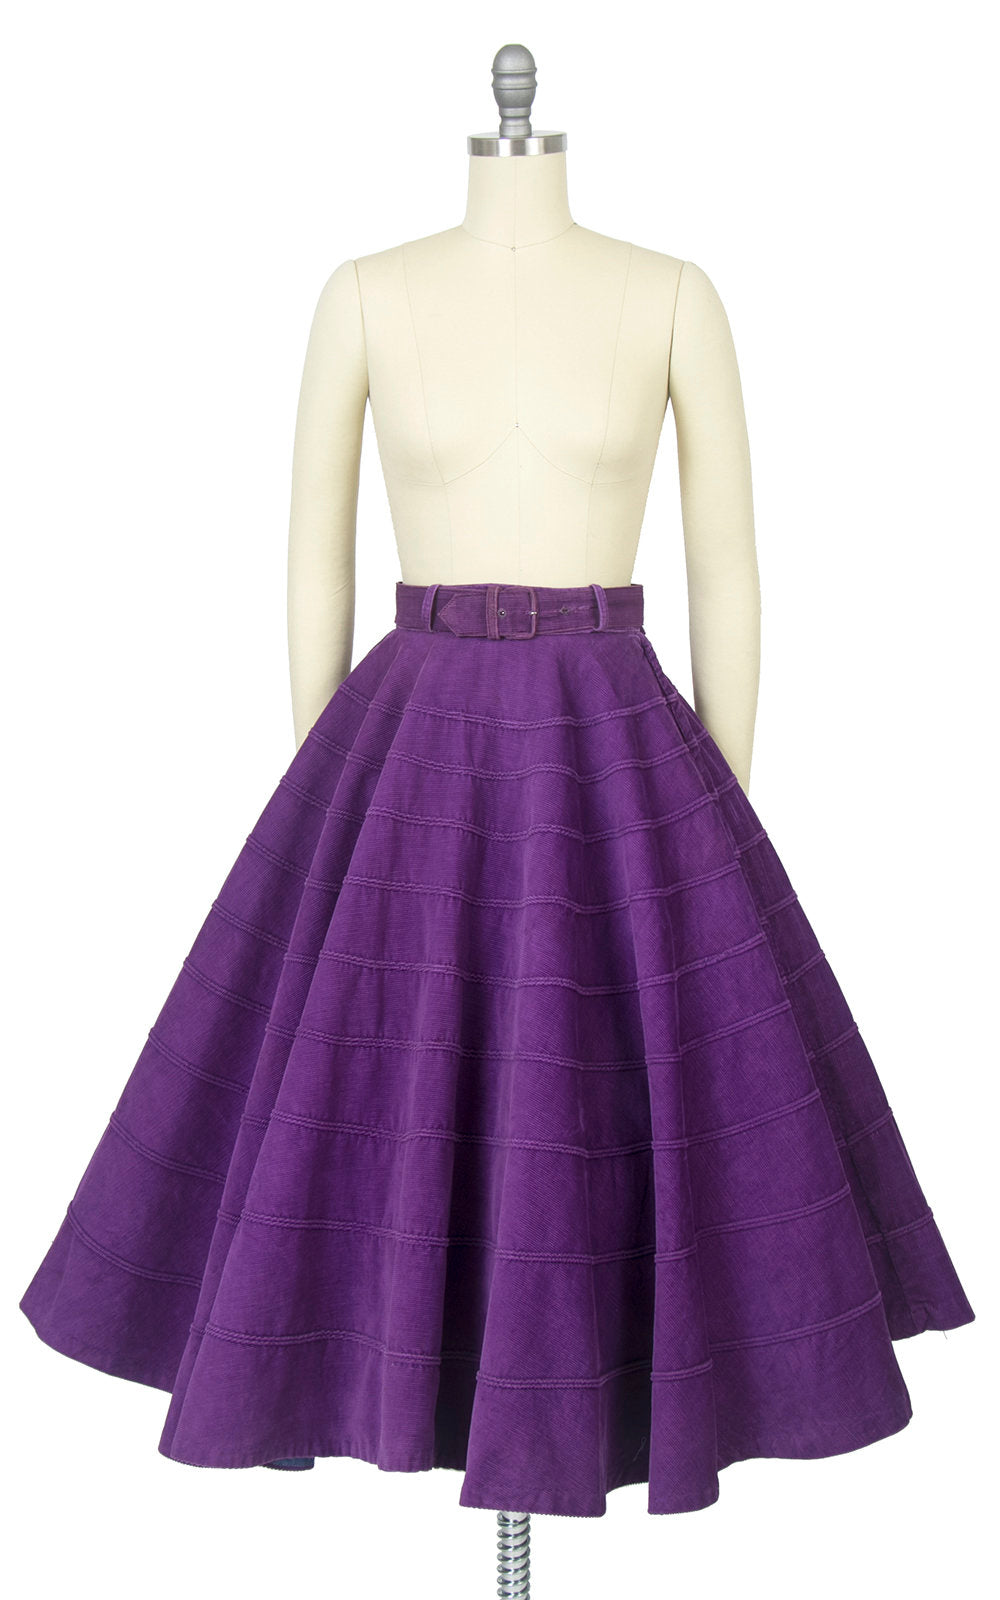 Vintage 1950s Circle Skirt | 50s Royal Purple Cotton Corduroy Belted Swing Skirt (x-small)